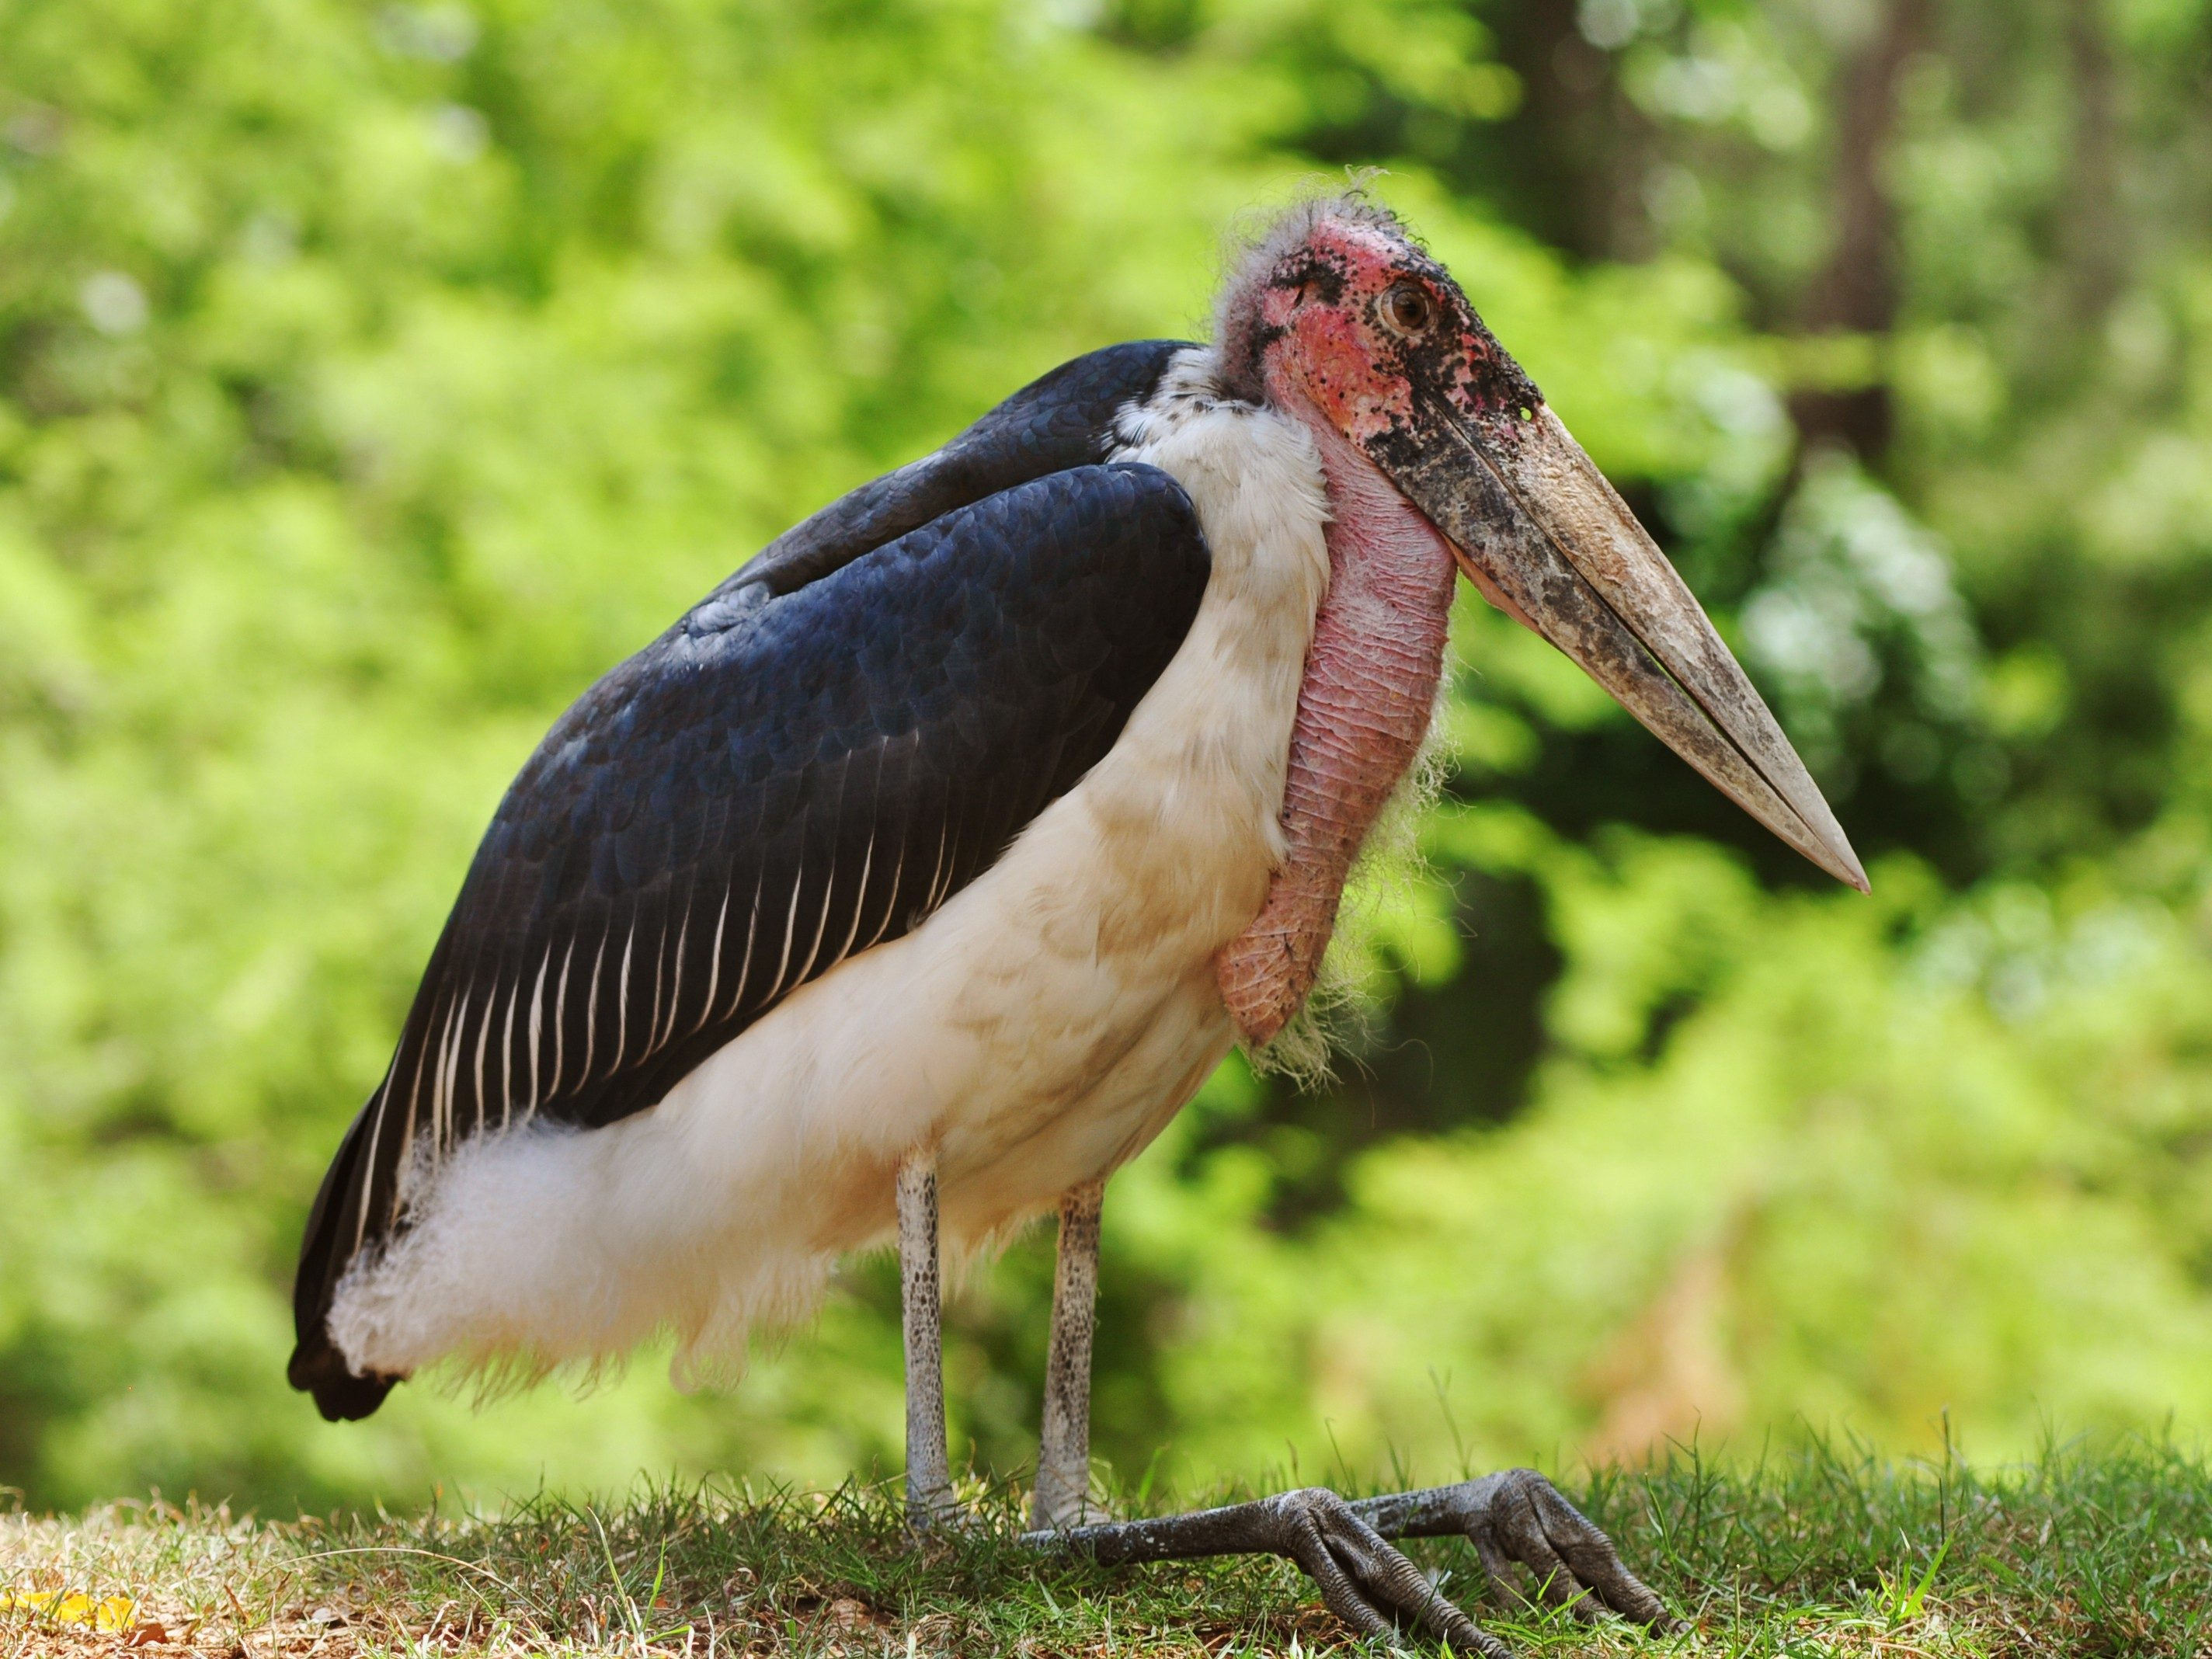 World's Strangest Birds: Marabou Stork